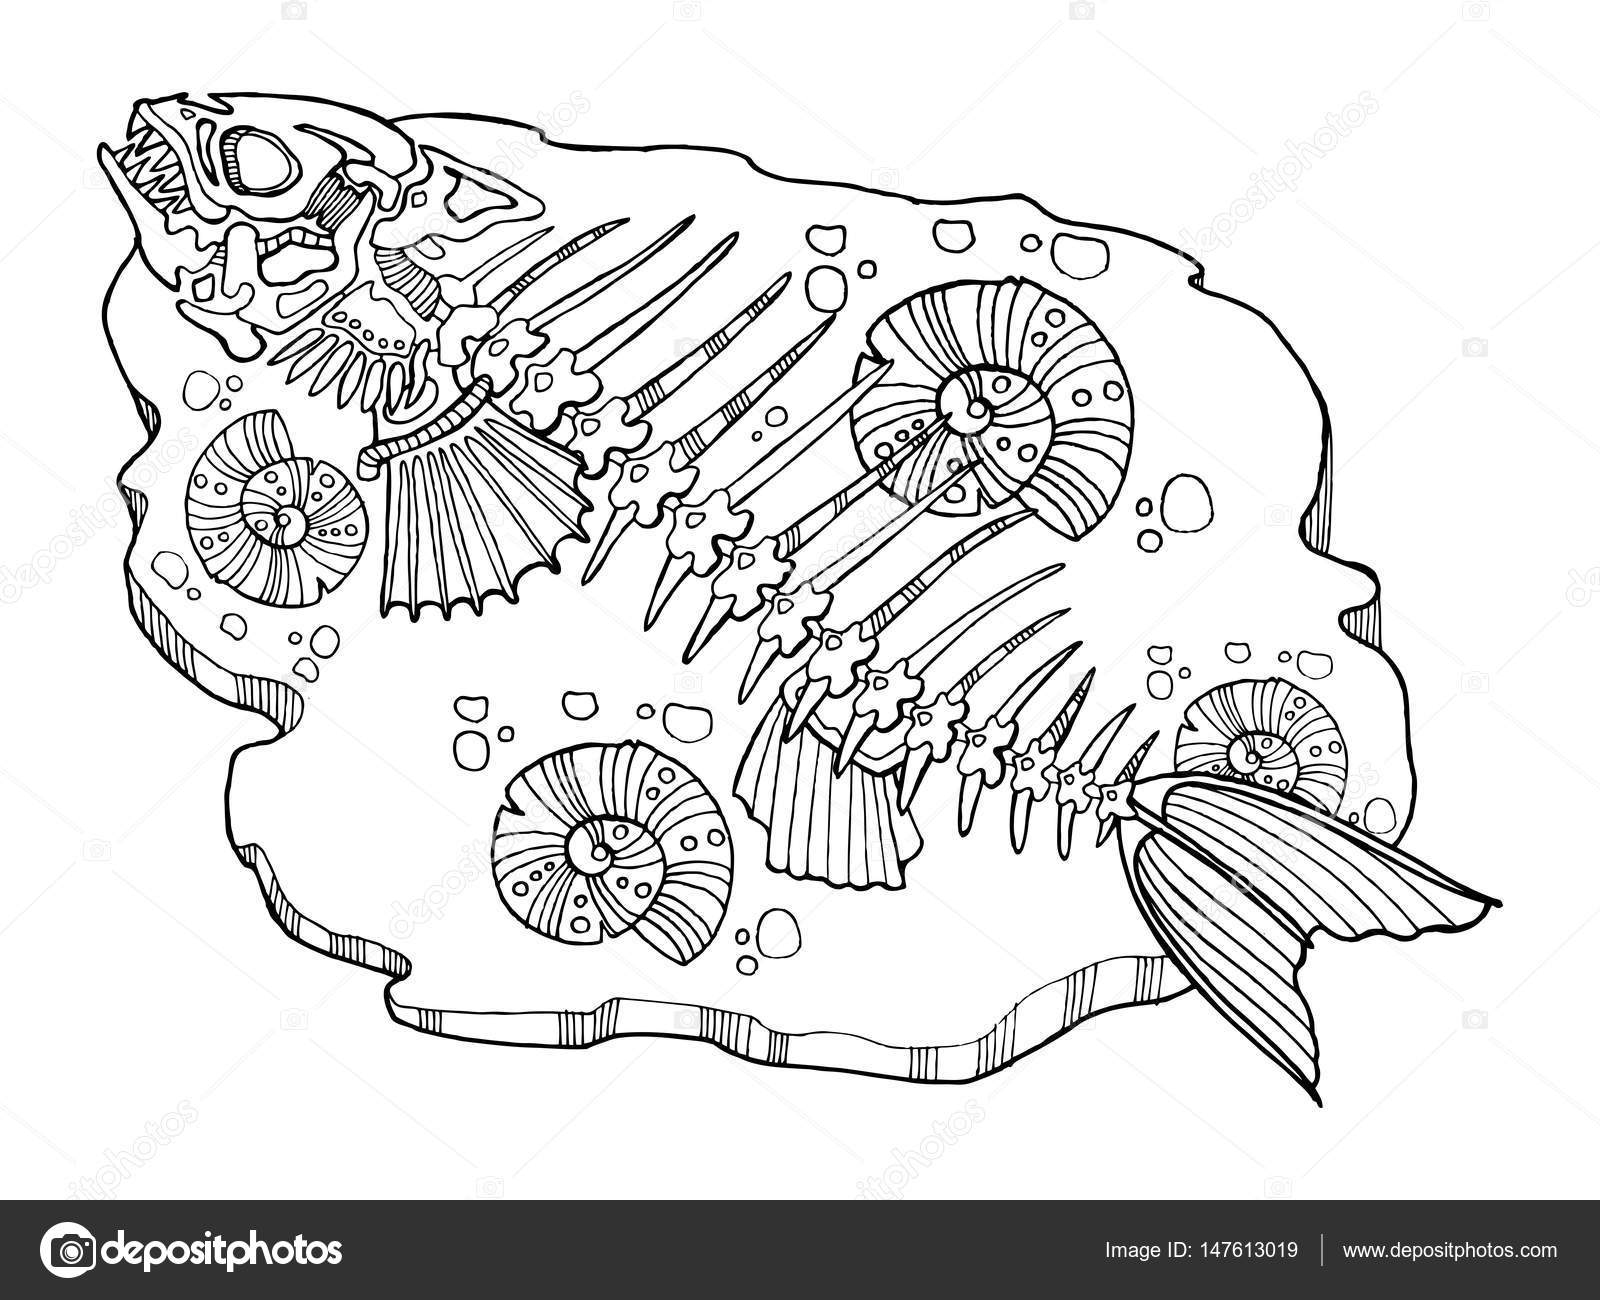 Skeleton Of Fish Coloring Book Vector Illustration Stock Vector